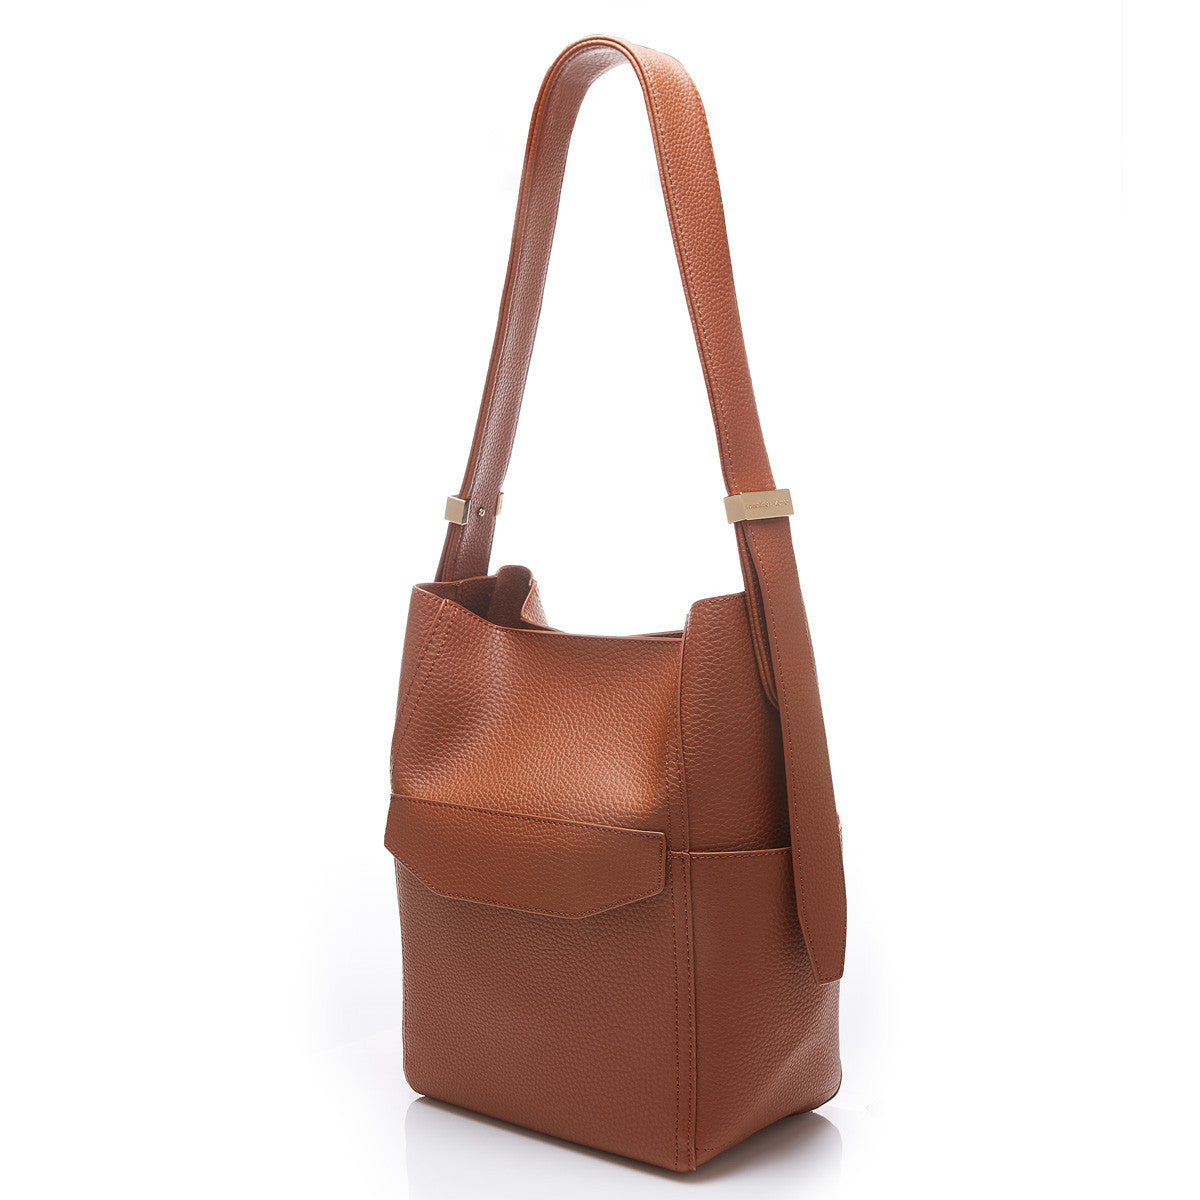 RIBAG - BROWN